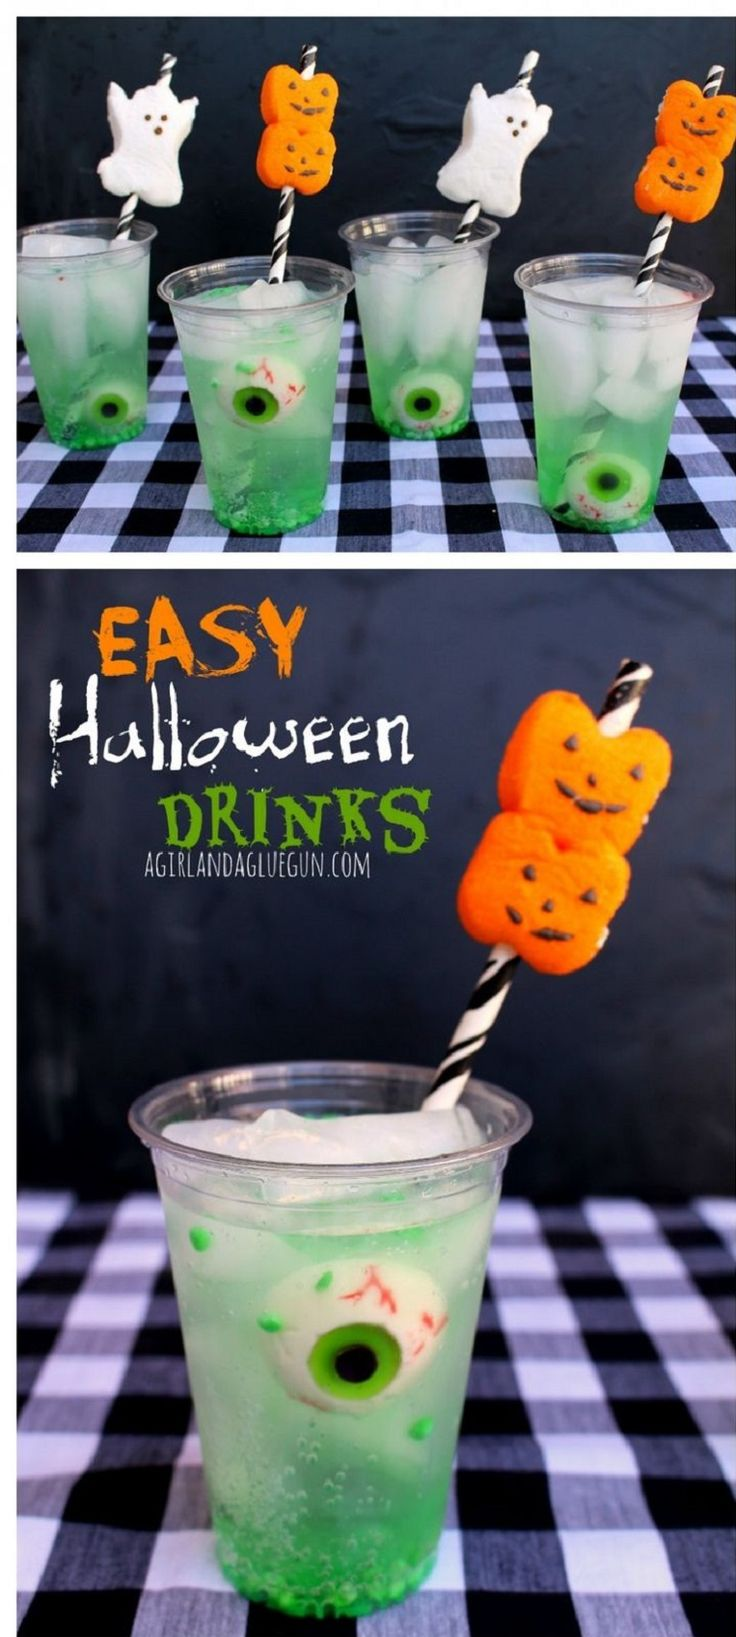 11 Non-Alcoholic Drinks for Halloween - GleamItUp: